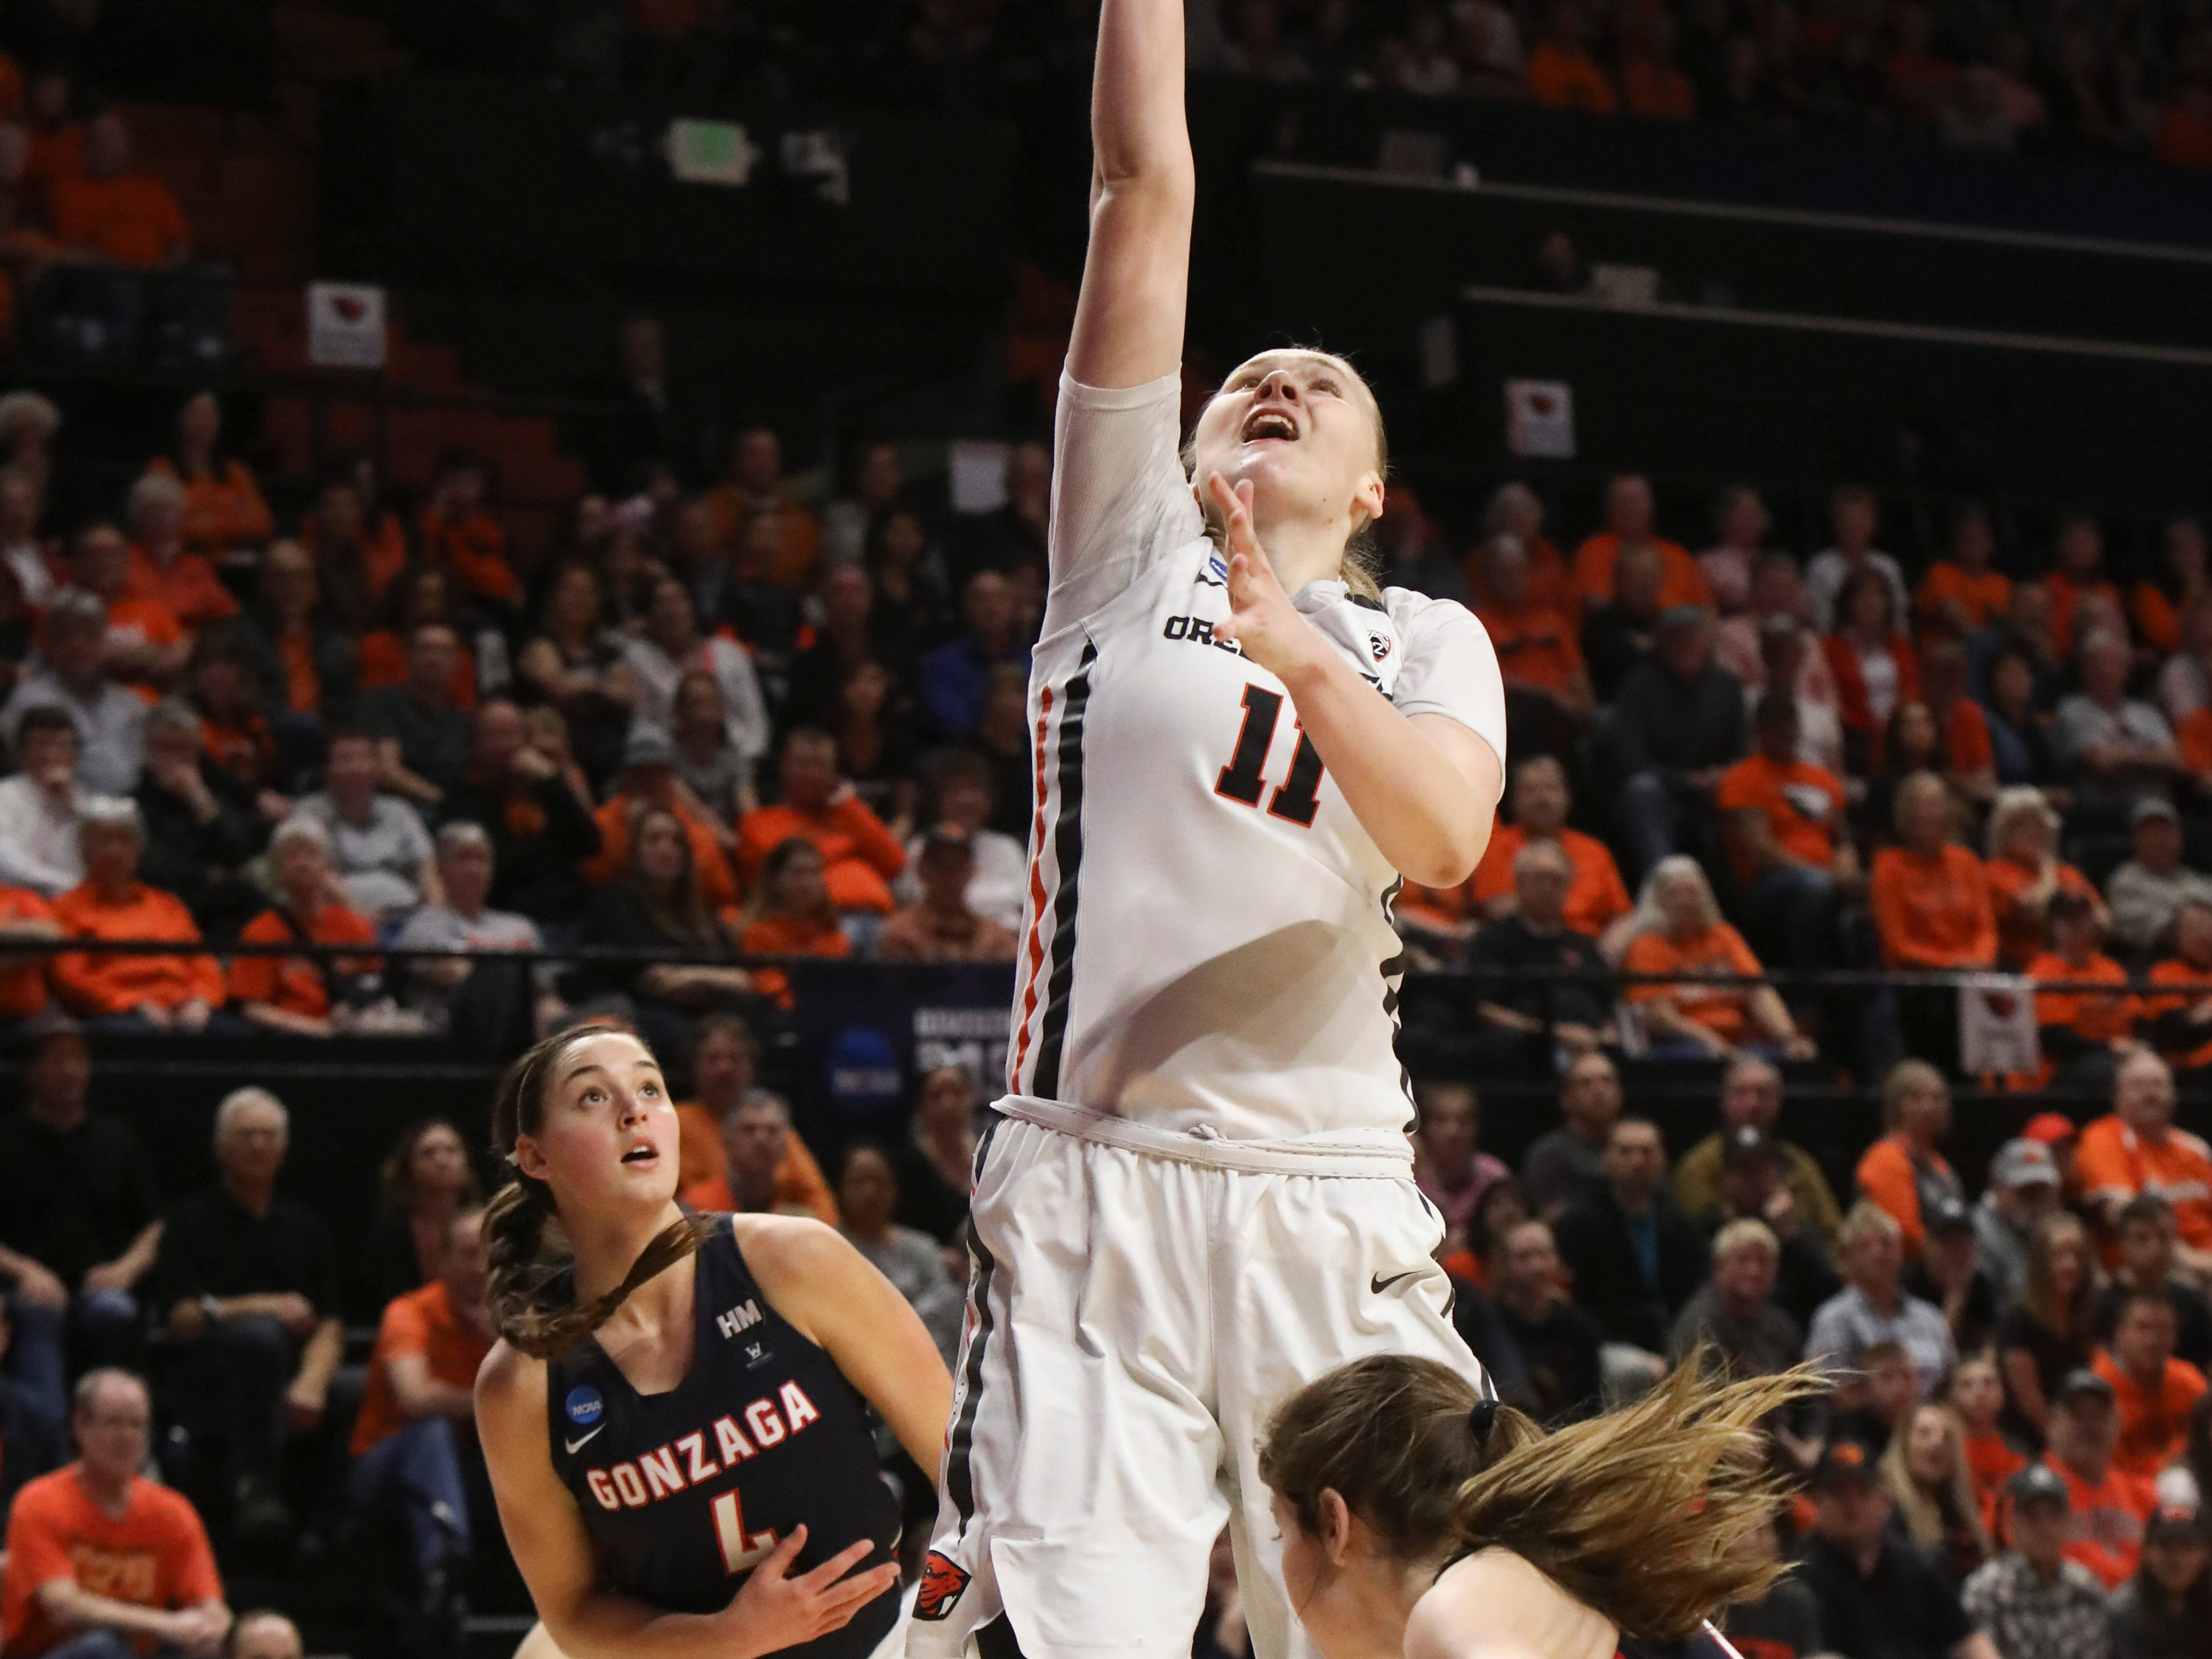 Oregon State's Joanna Grymek (11) makes it through Gonzaga's LeeAnne Wirth (4) and Katie Campbell (24) to score during the first half of a second-round game of the NCAA women's college basketball tournament in Corvallis, Ore., Monday, March 25, 2019. (AP Photo/Amanda Loman)